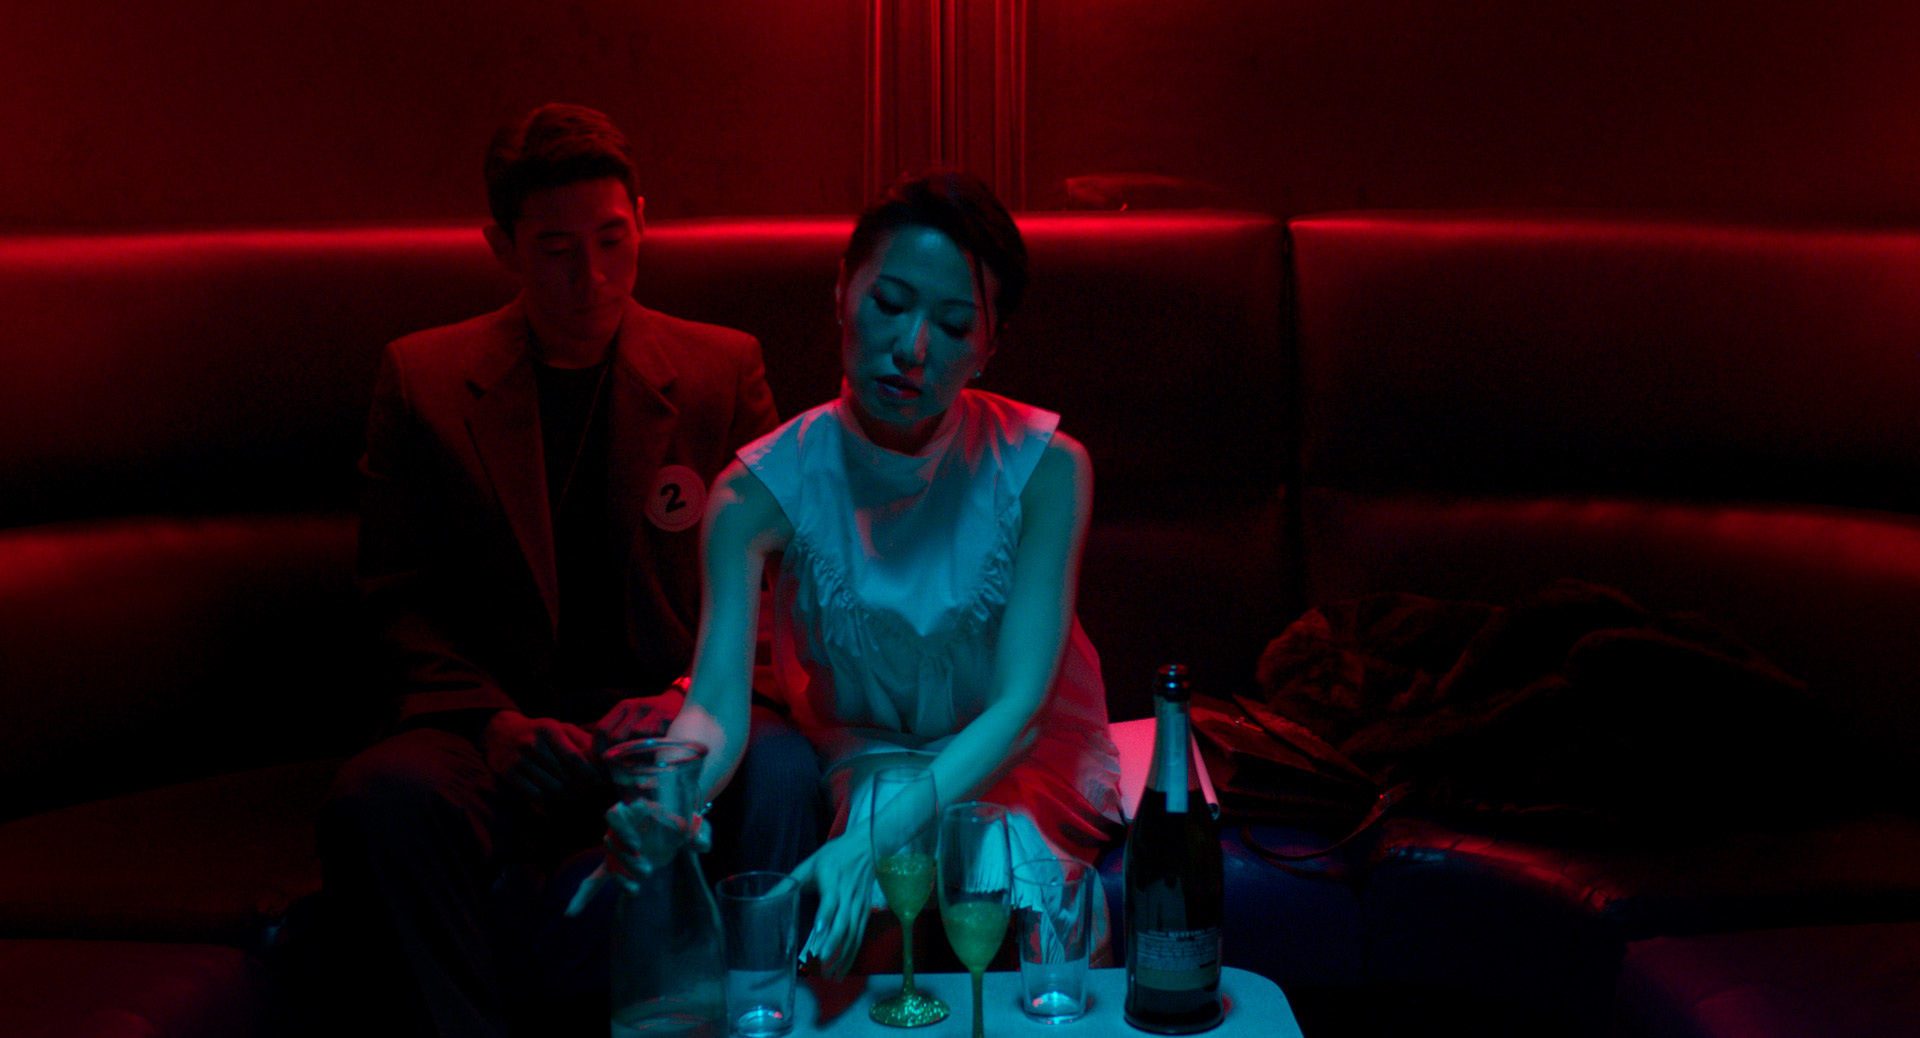 Koreatown - Directed by Grant Hyun (2018, USA)